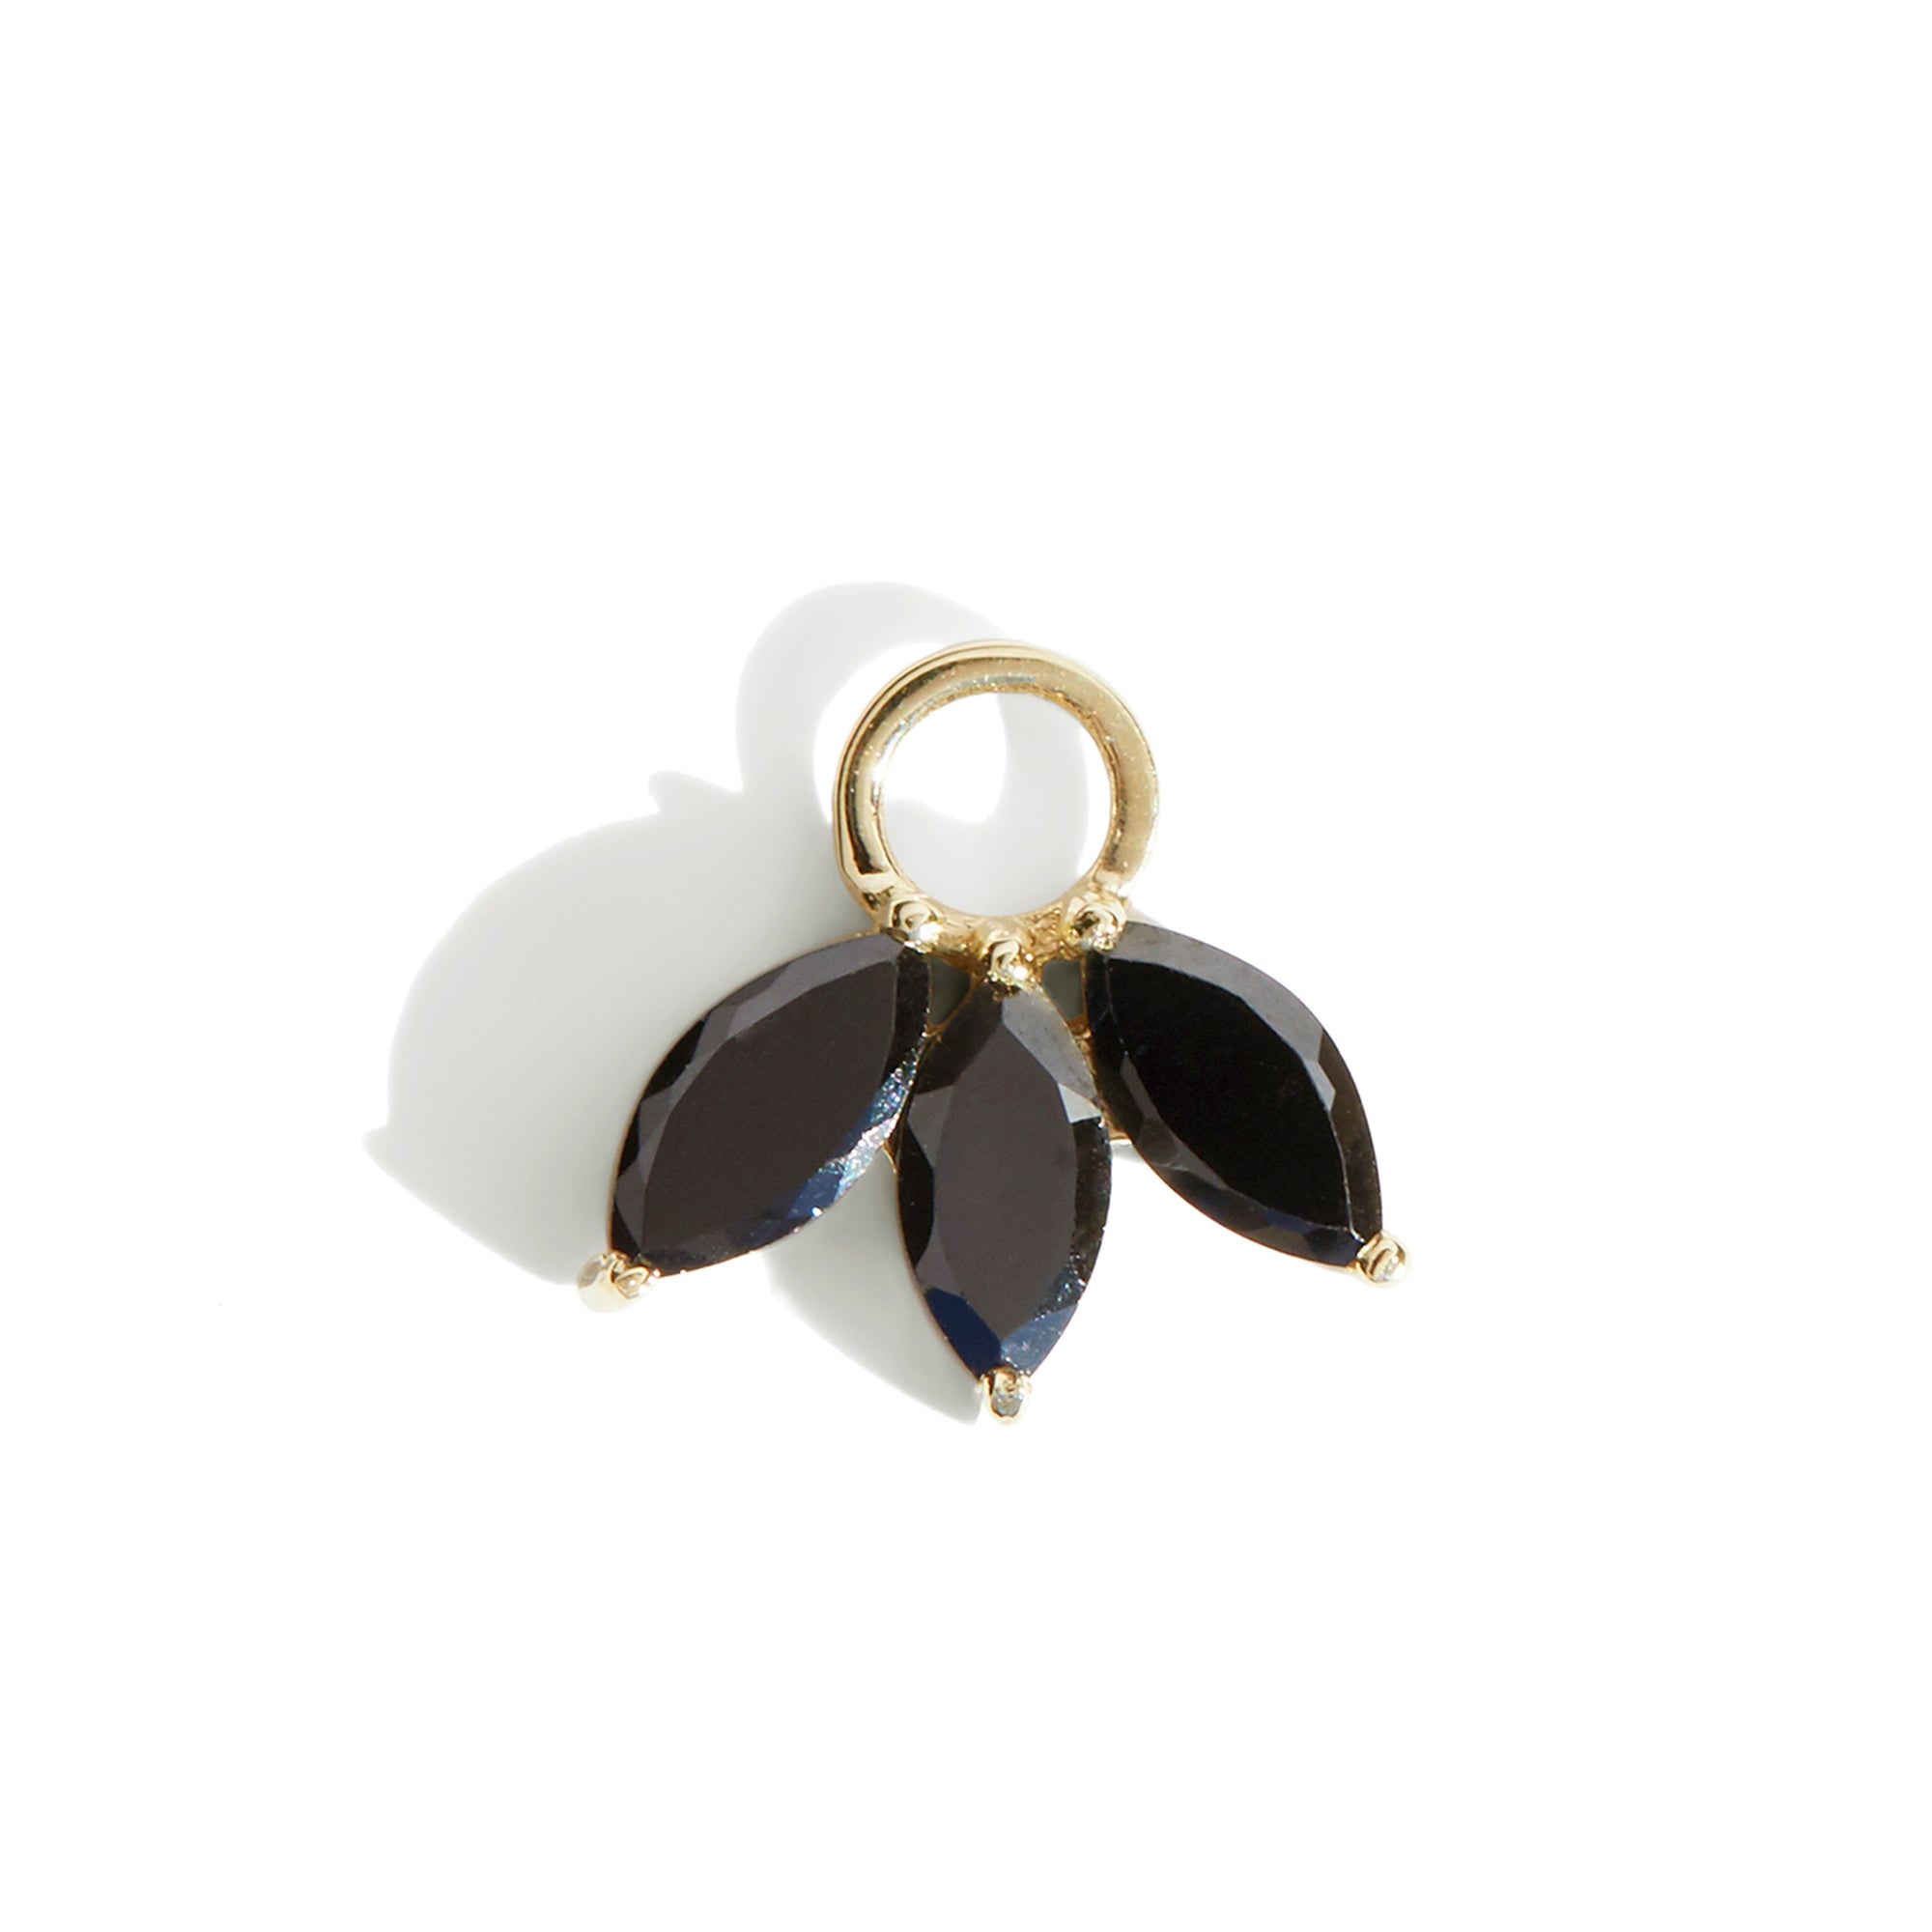 The Tri Spinel Marquise Charm in 9kt Yellow Gold